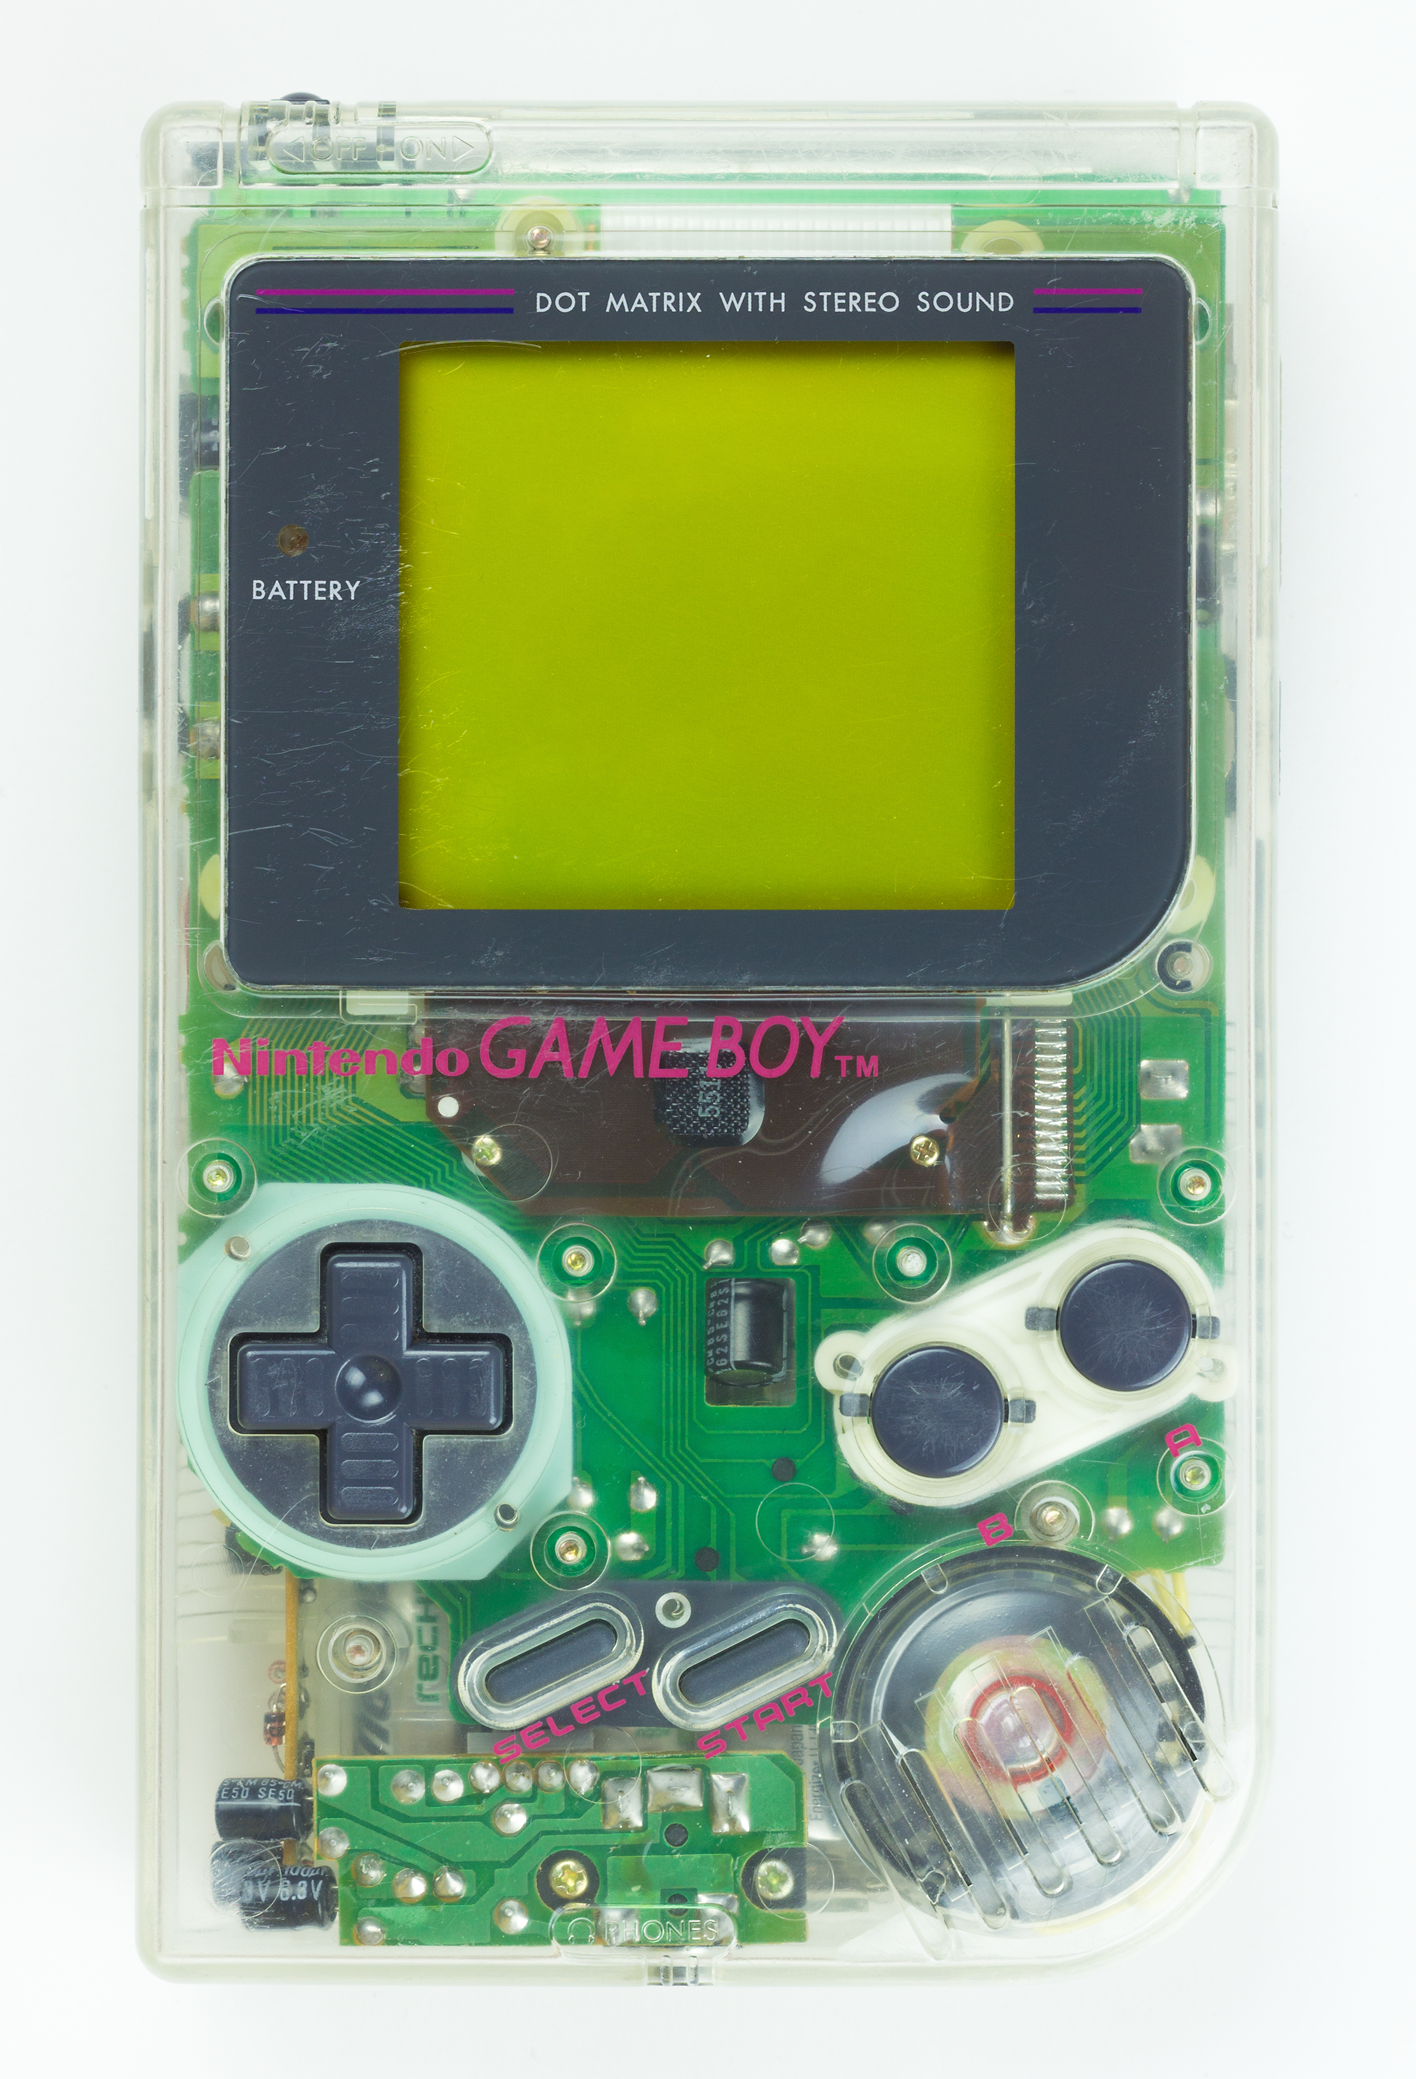 1416 x 2079 png 4264kBGameboy